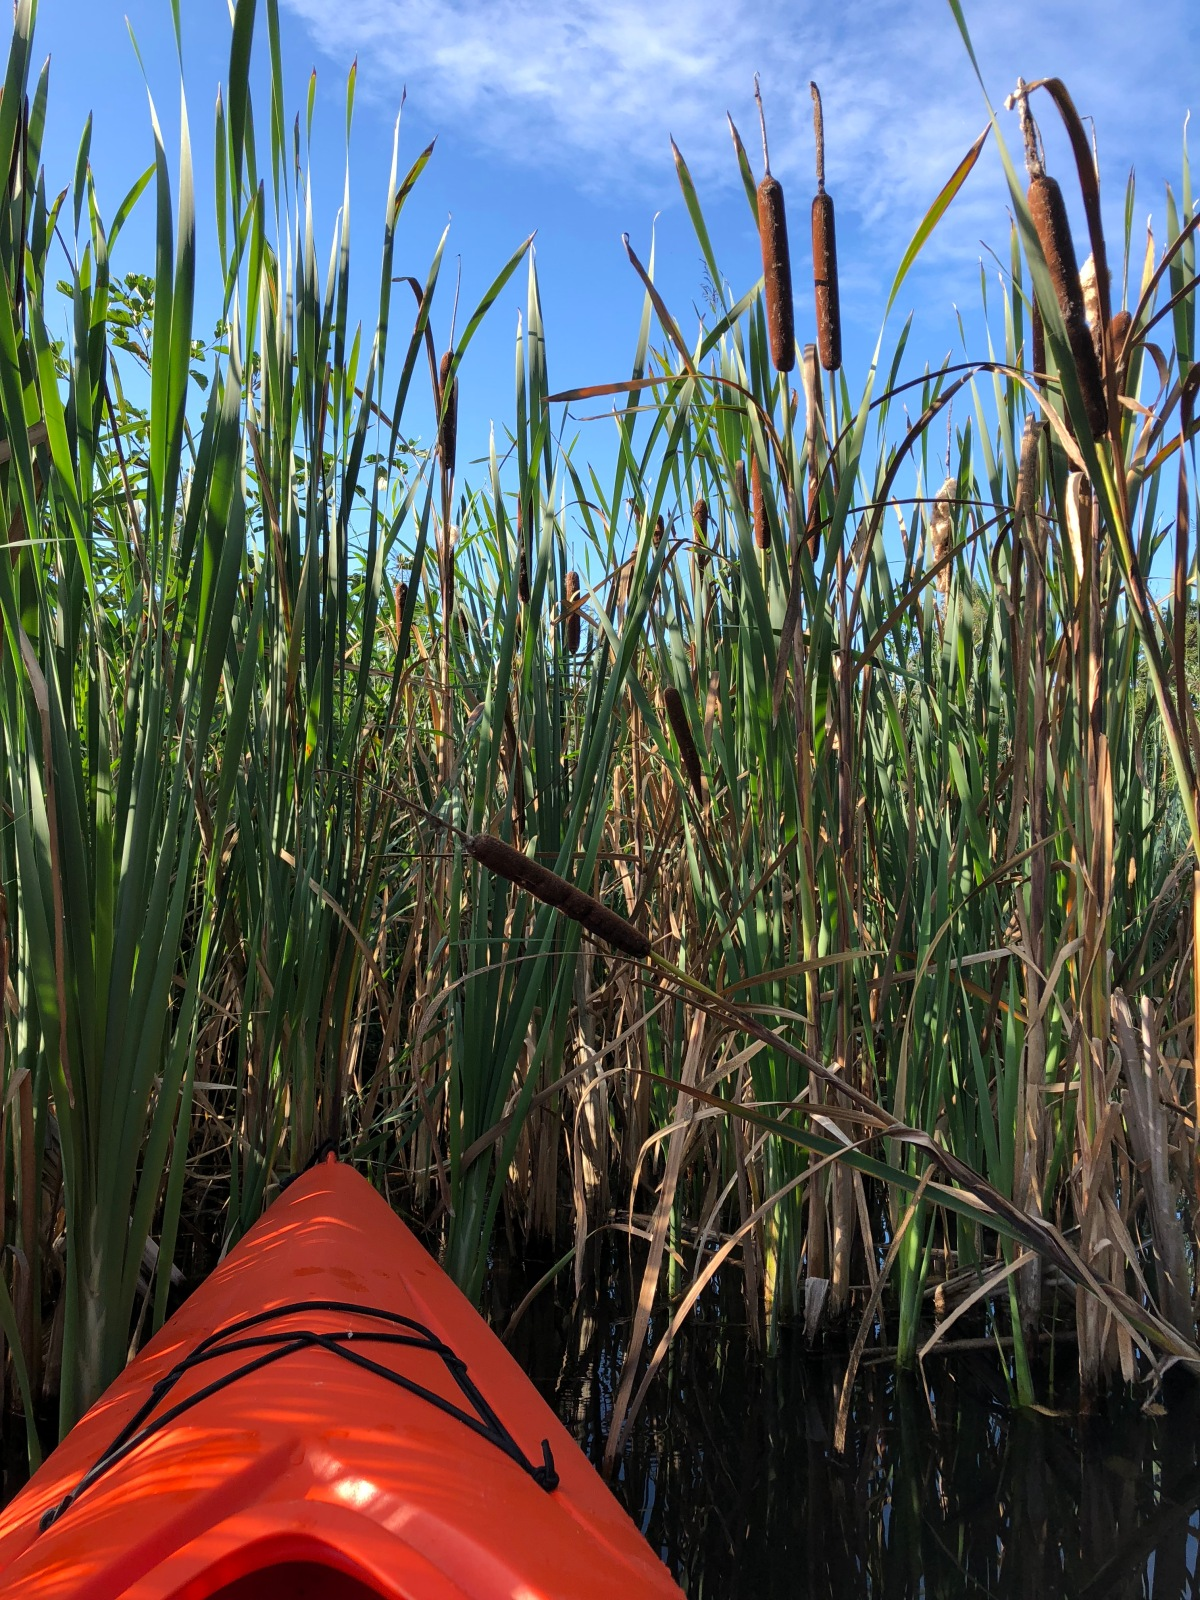 Sitting in the cattails